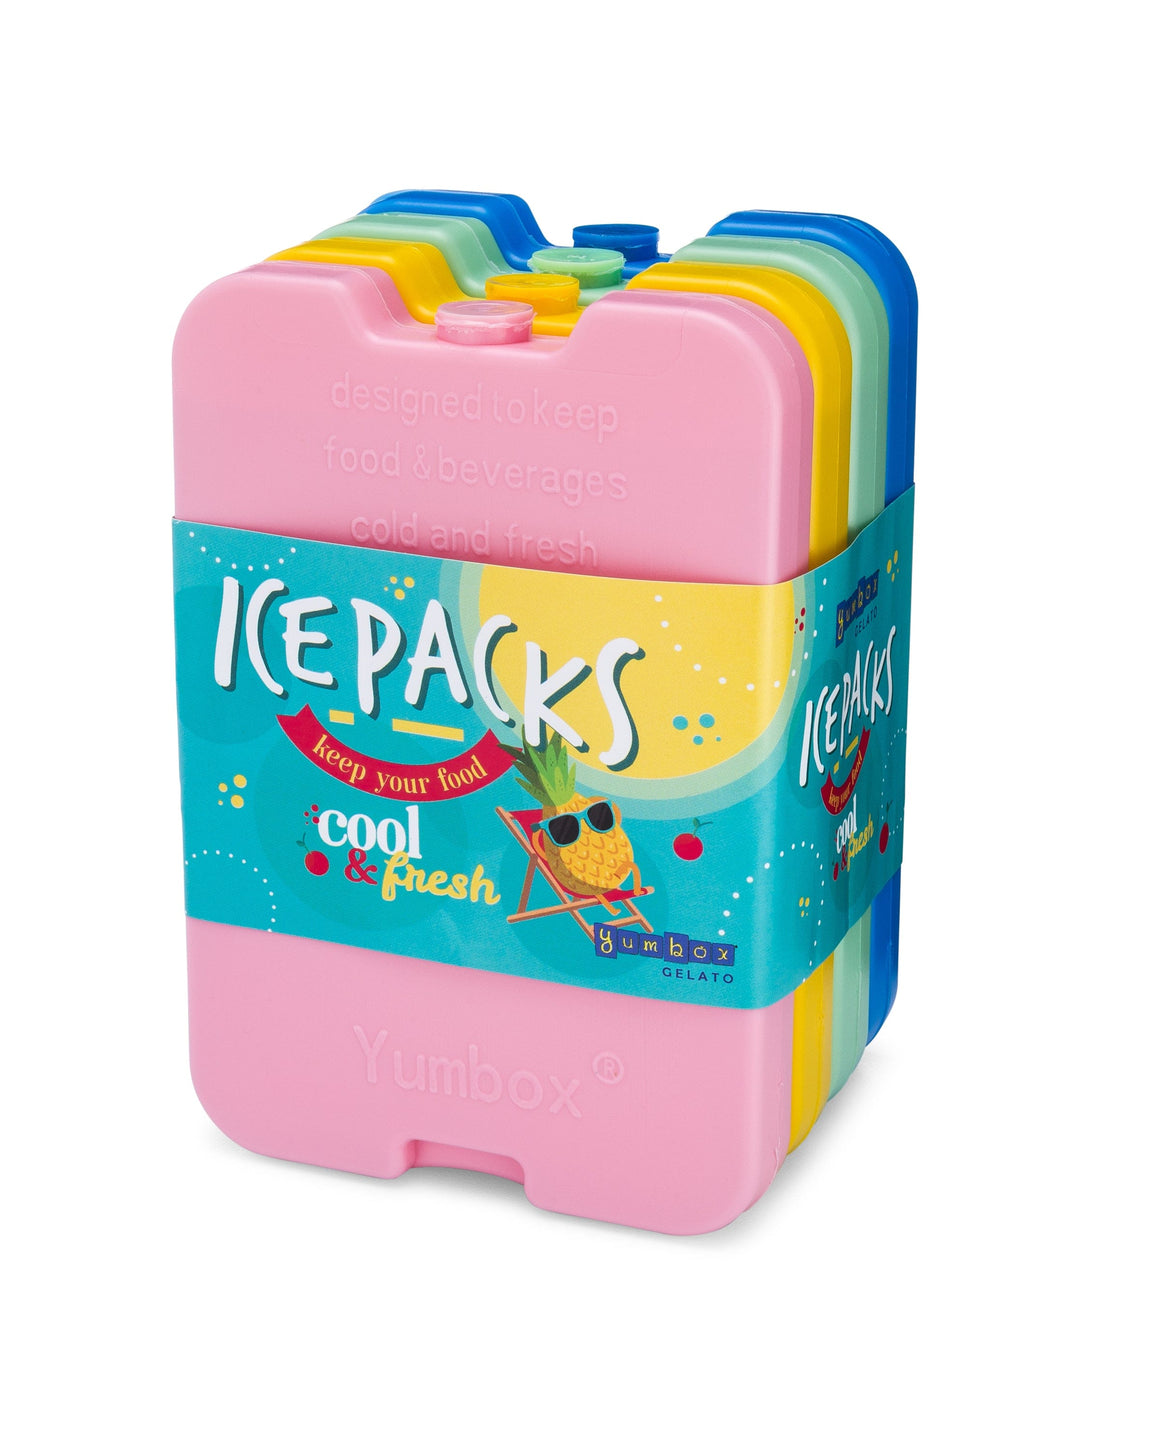 Yumbox Gelato Reusable Ice Packs 4 PK